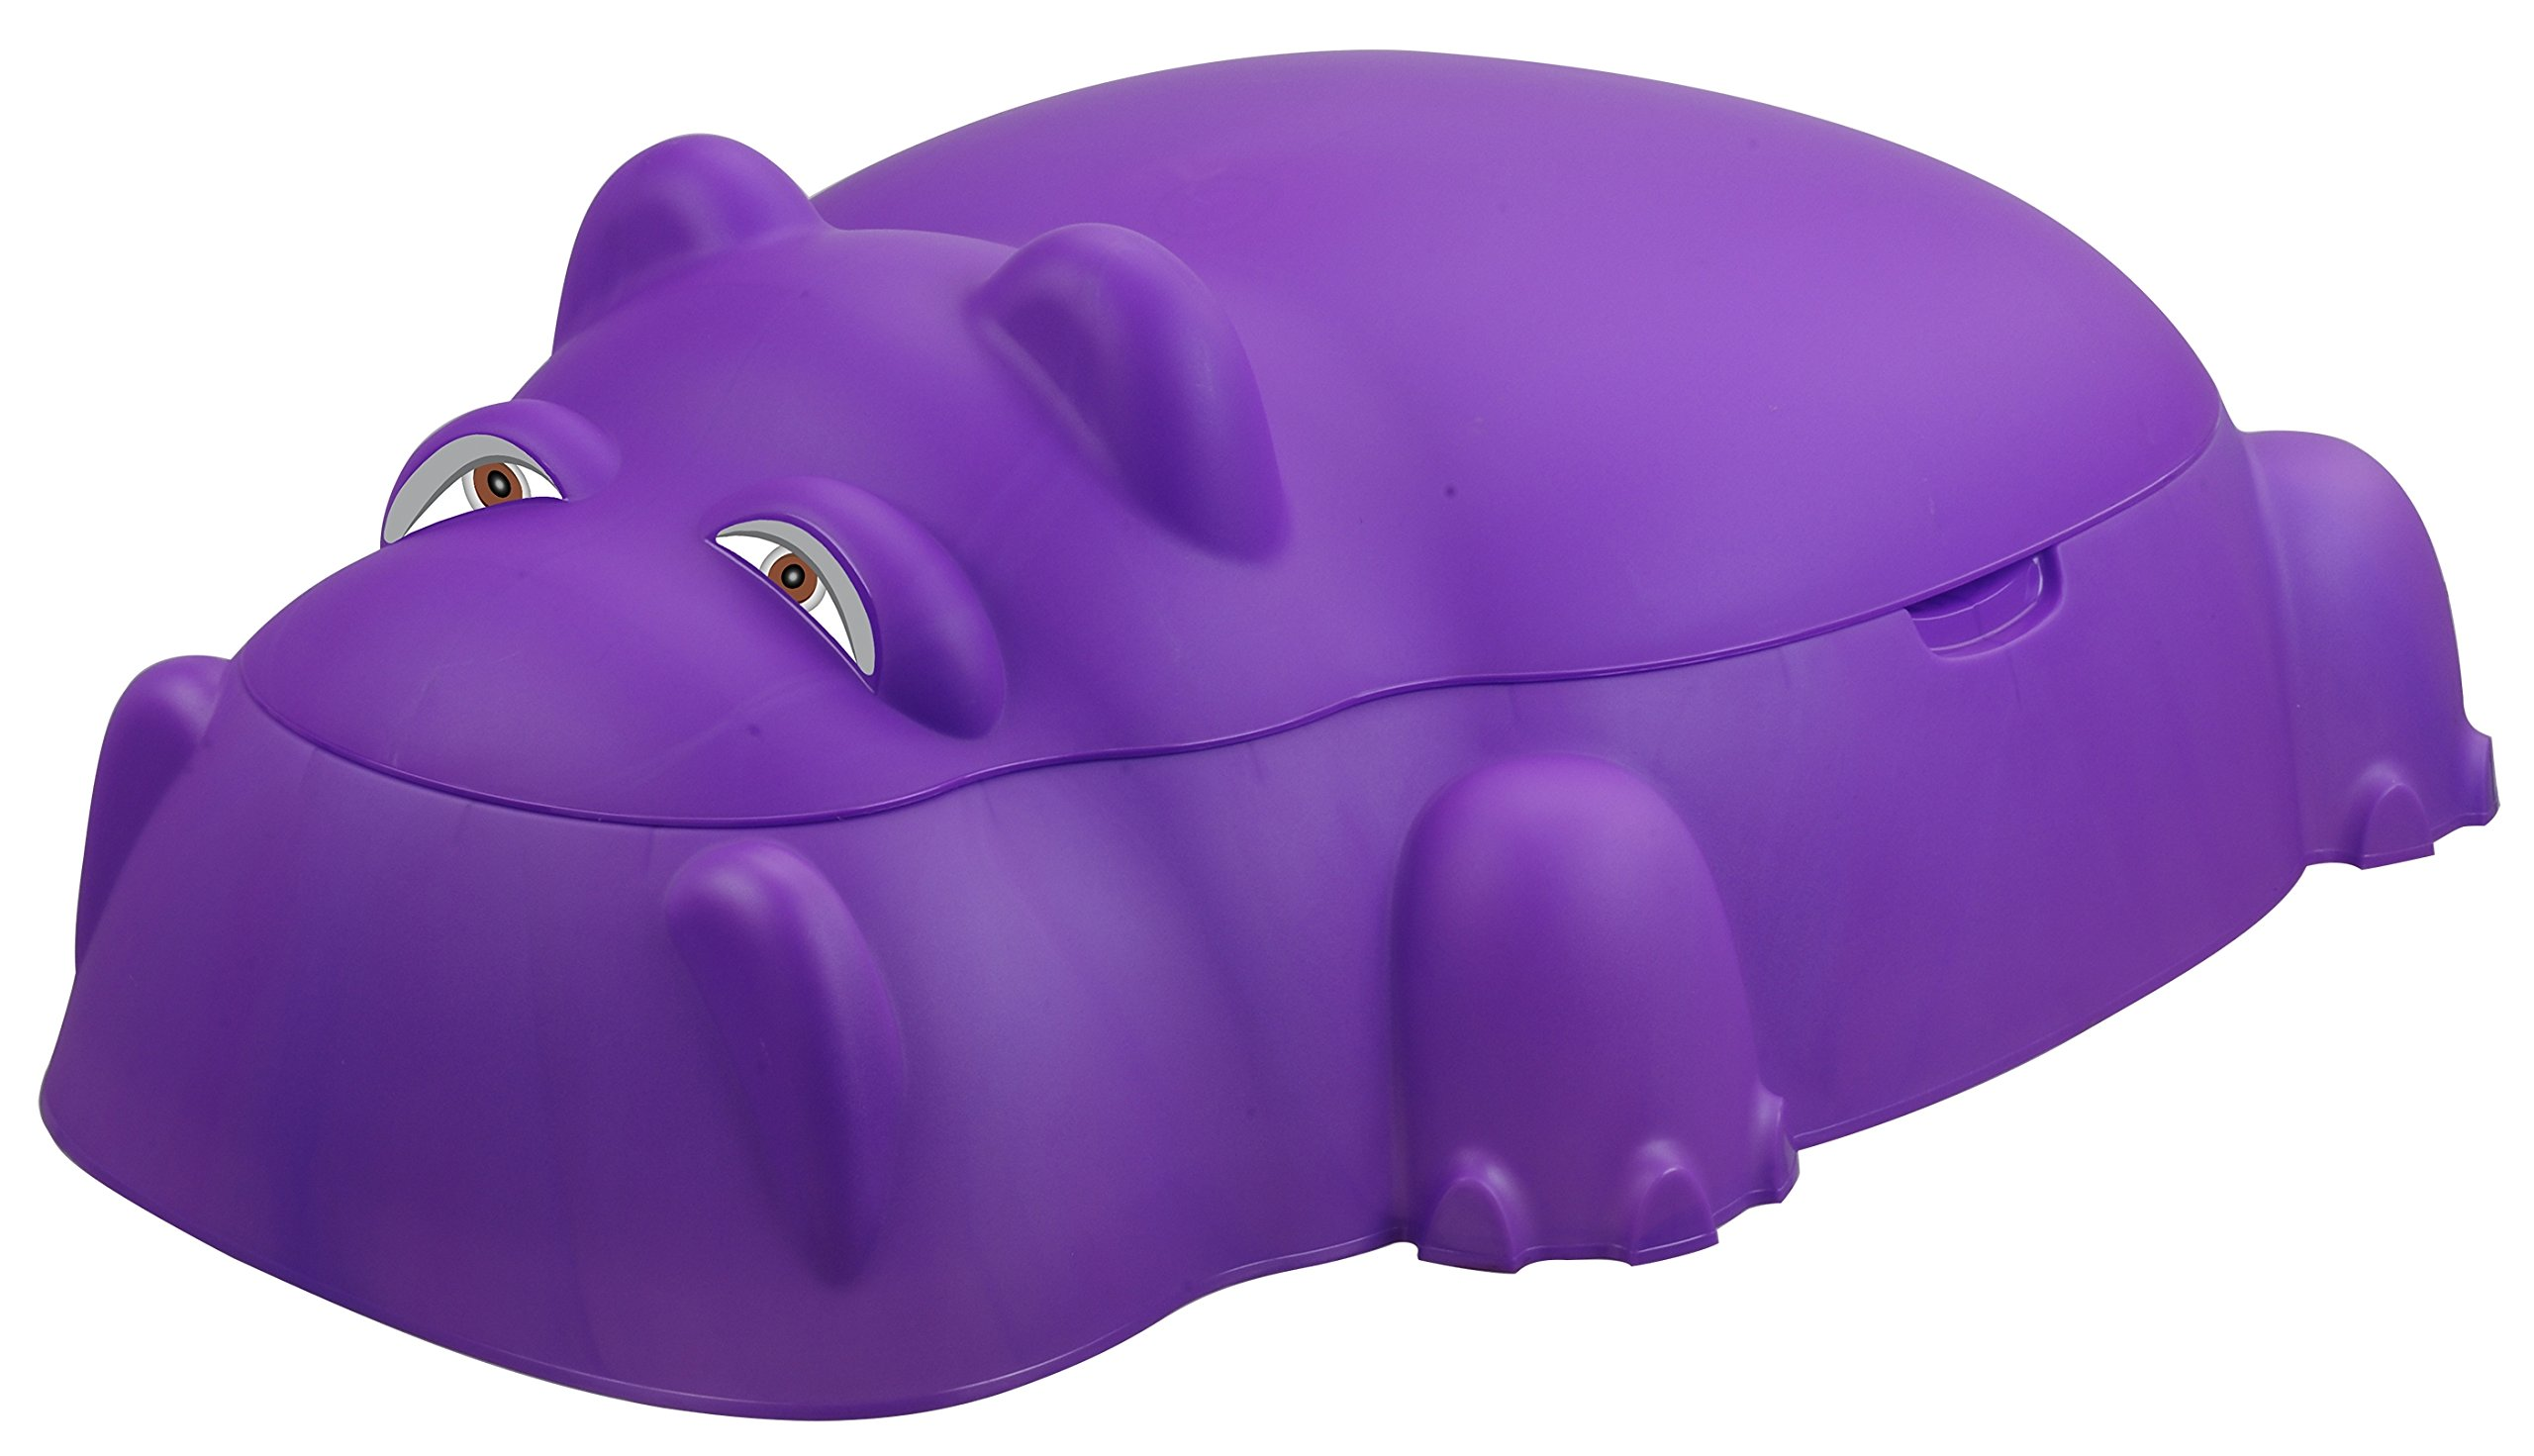 Starplay Hippo Pool/Sandpit with Cover, Purple